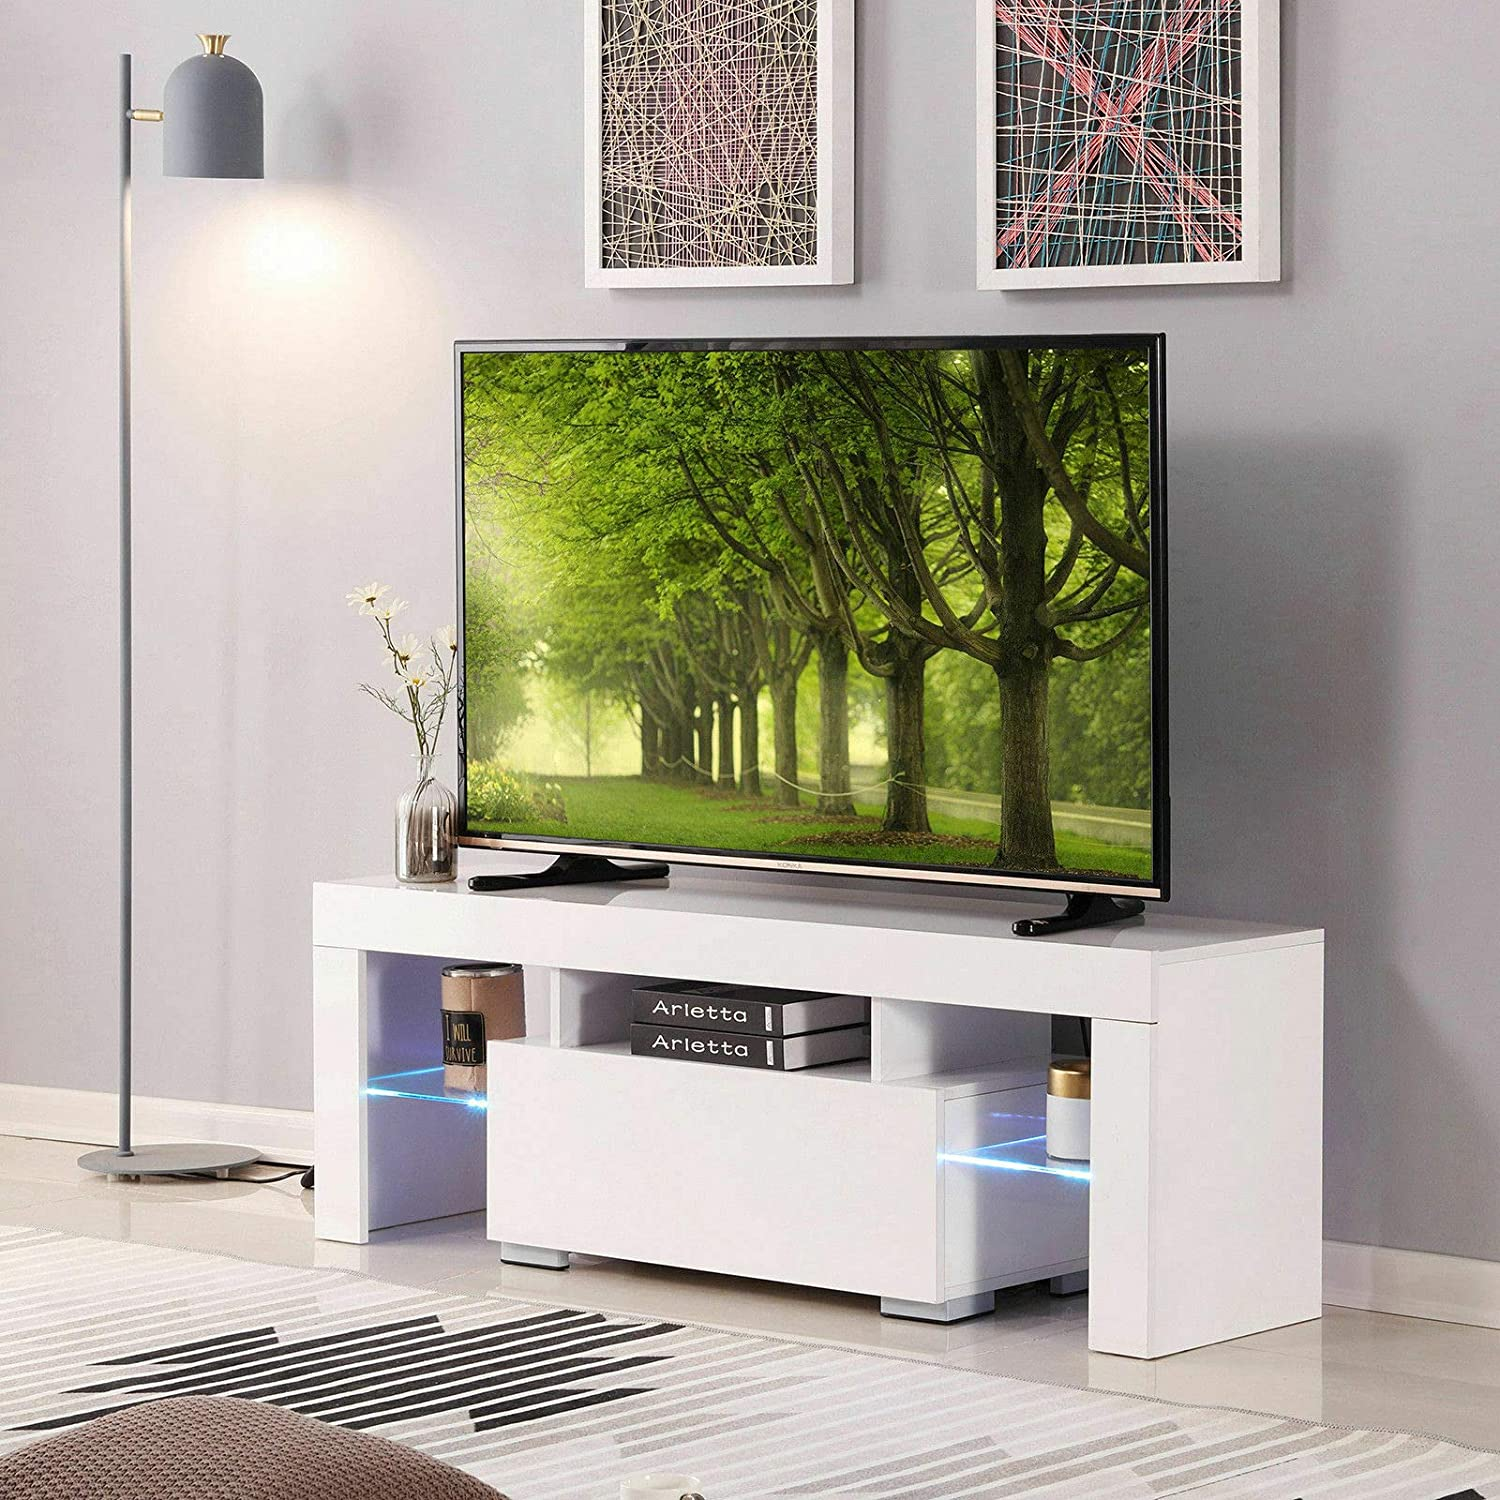 Qinghongkeen TV Cabinet, Modern White TV Stand 51 High Gloss Cabinet Console Unit Furniture with LED Shelve 2 Drawers, Shelves Entertainment Center Living Room Furniture, TV Stand Media Cabinet